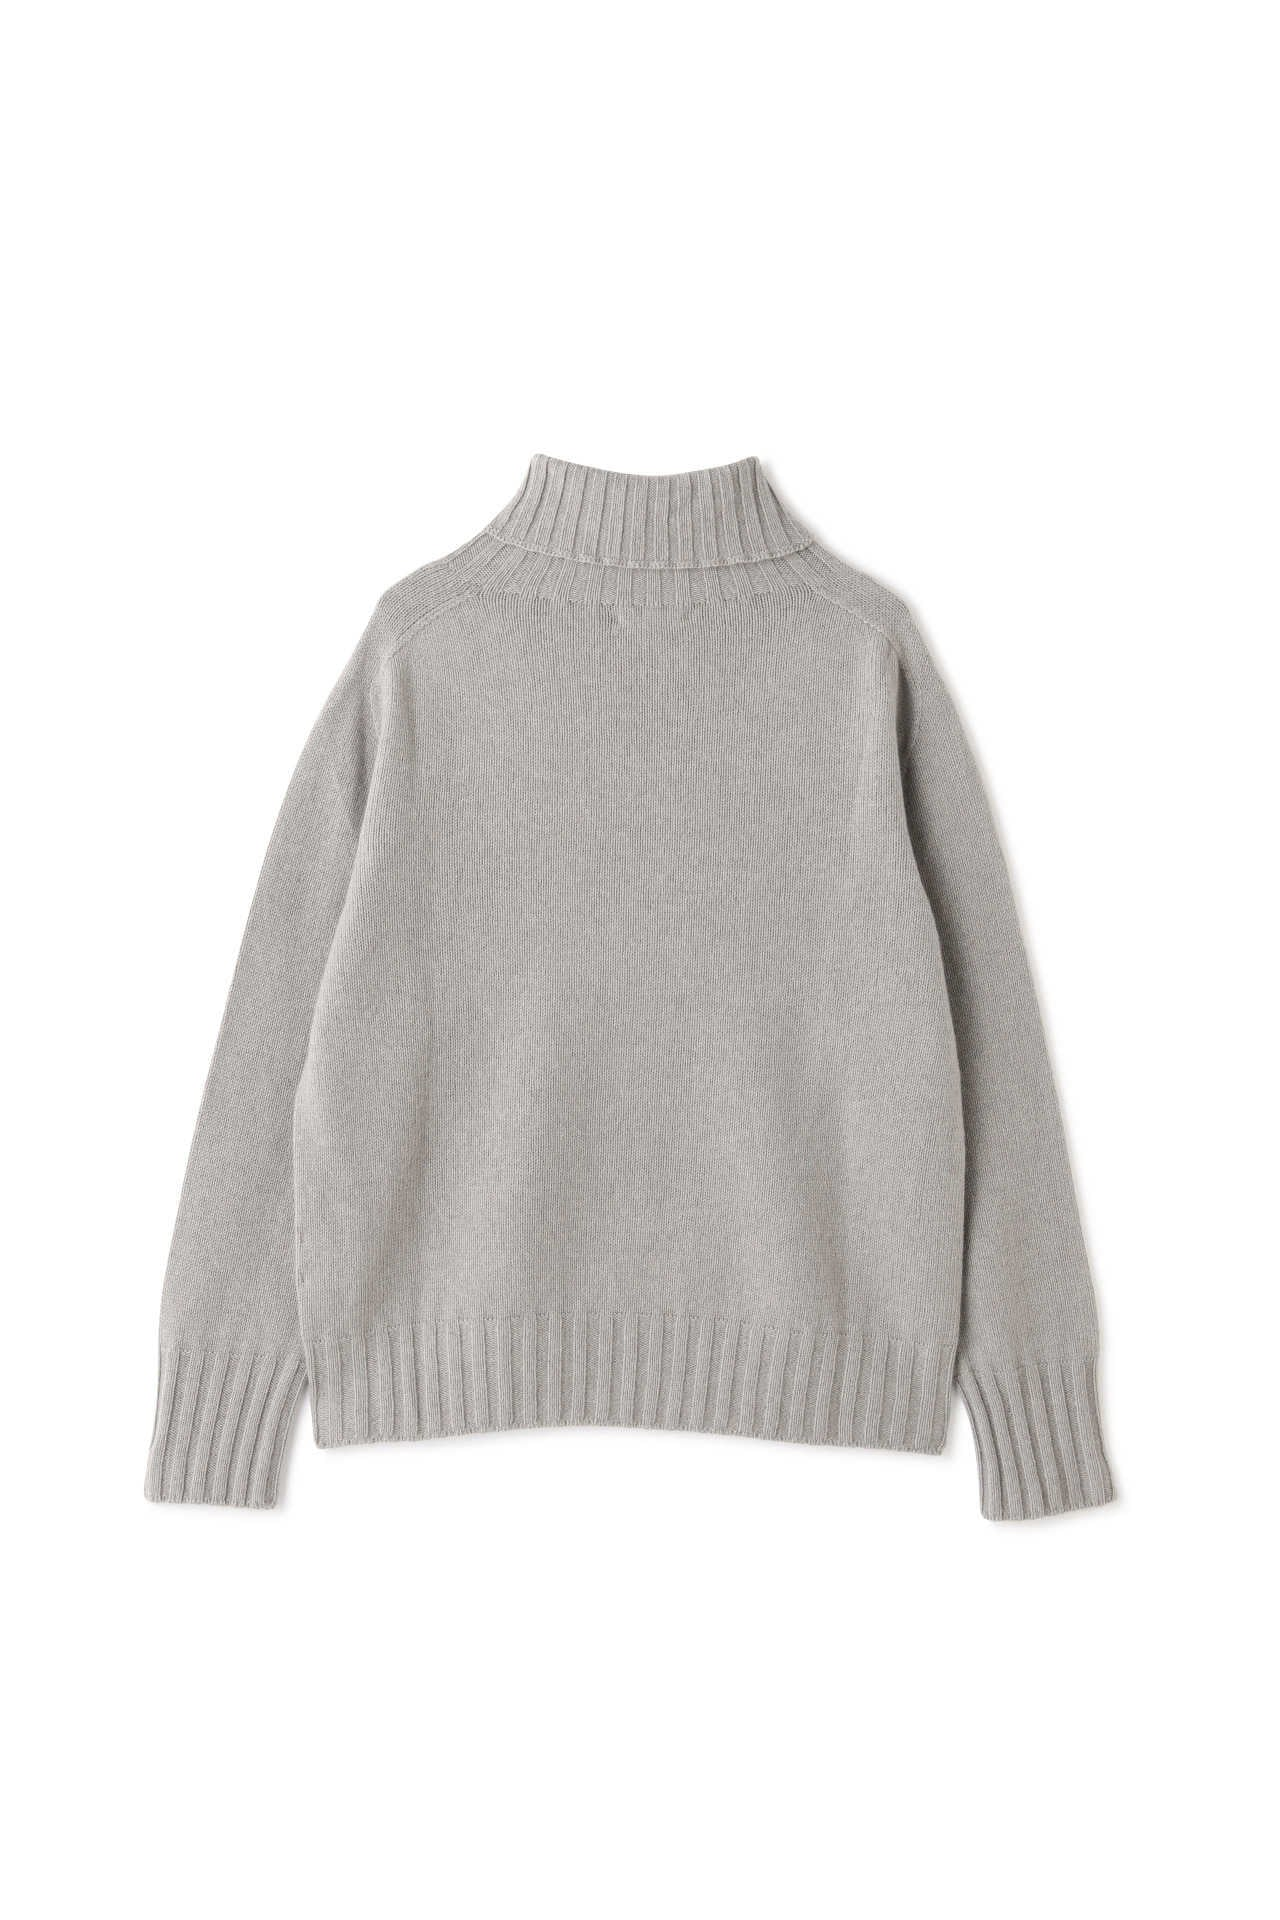 WIDE ROLL NECK7